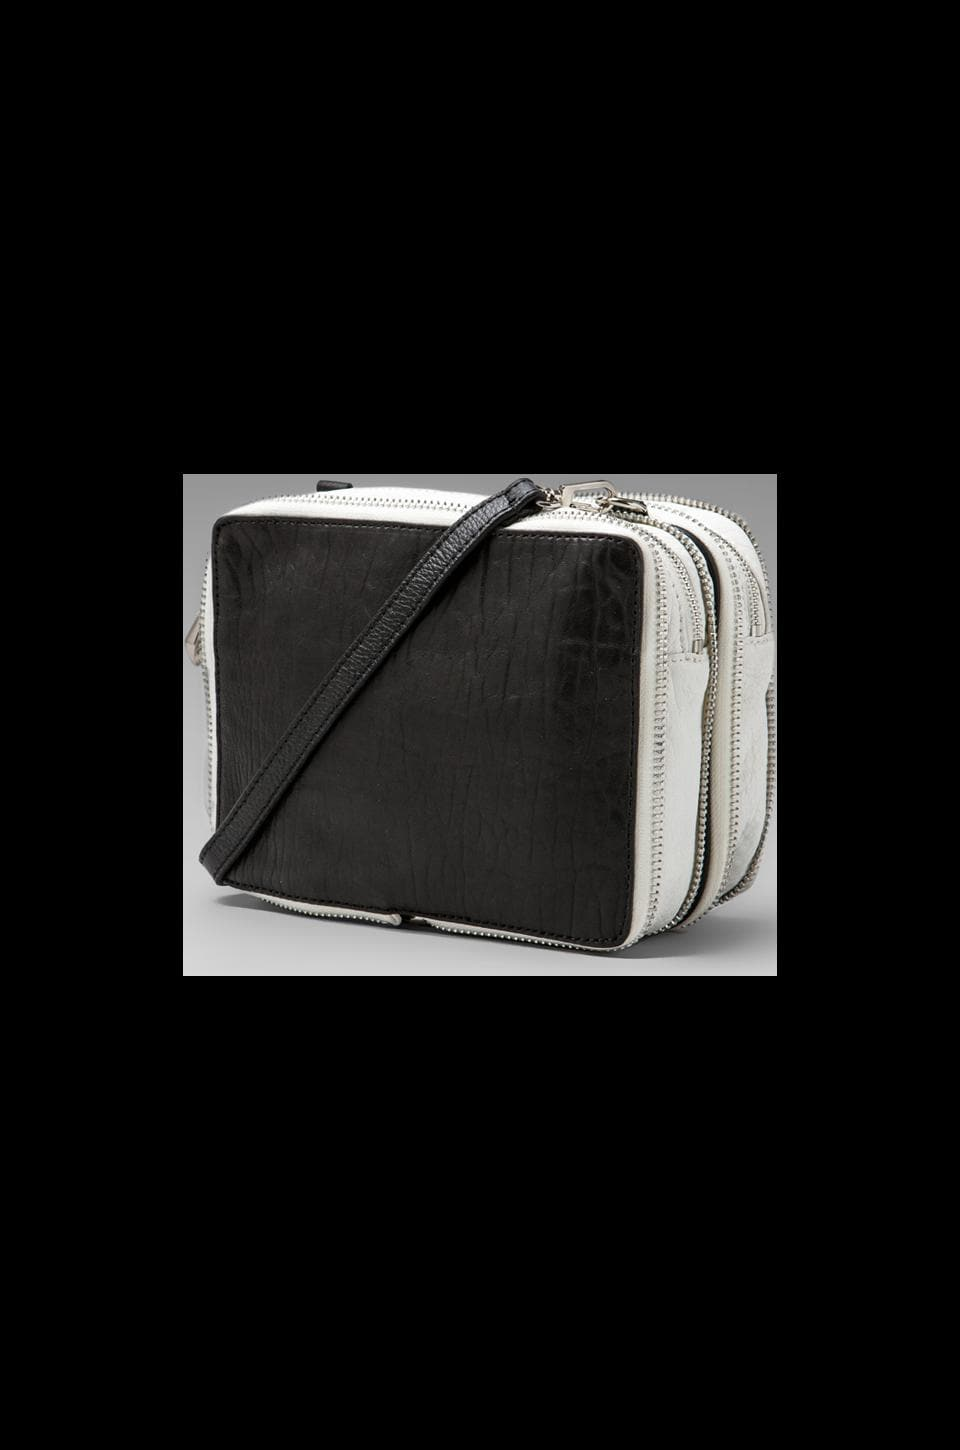 Pour La Victoire Marcelle Mini Crossbody in Black/White